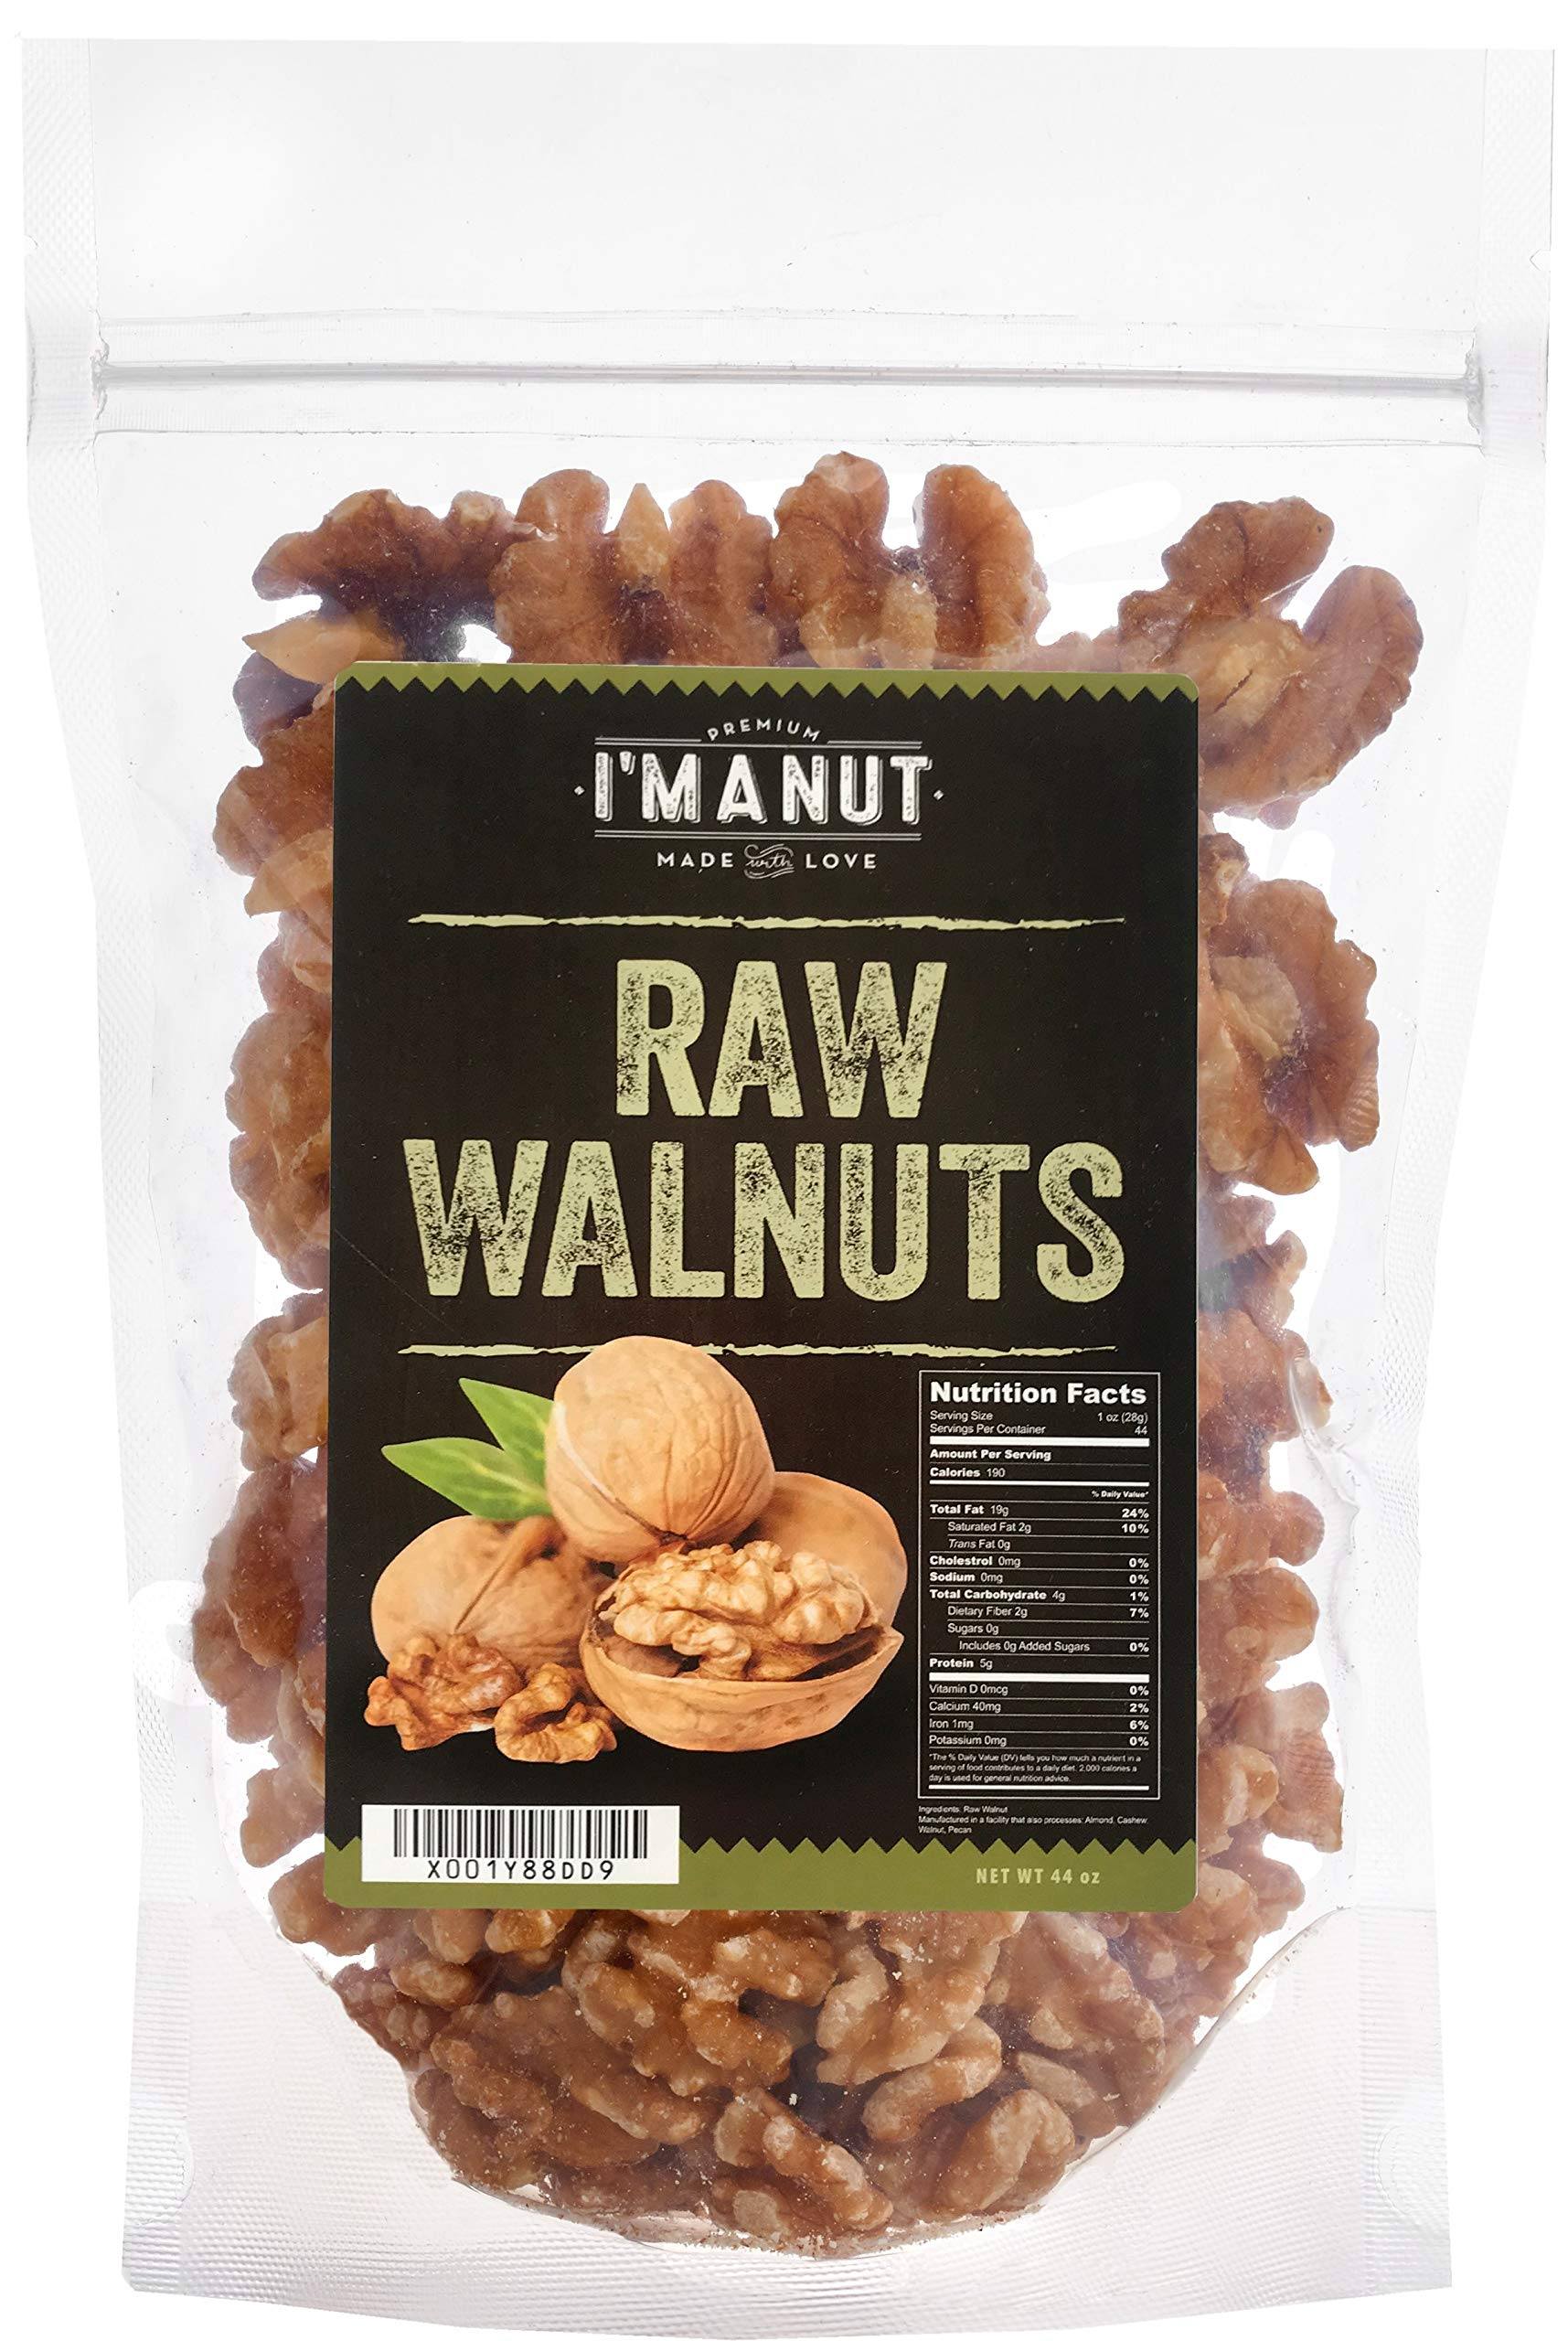 Raw Walnuts (2.75 Pounds) Compares to Organic, Halves and Pieces,100% Natural,NO PPO, No Preservatives, Non-GMO, Shelled, by I'm A Nut